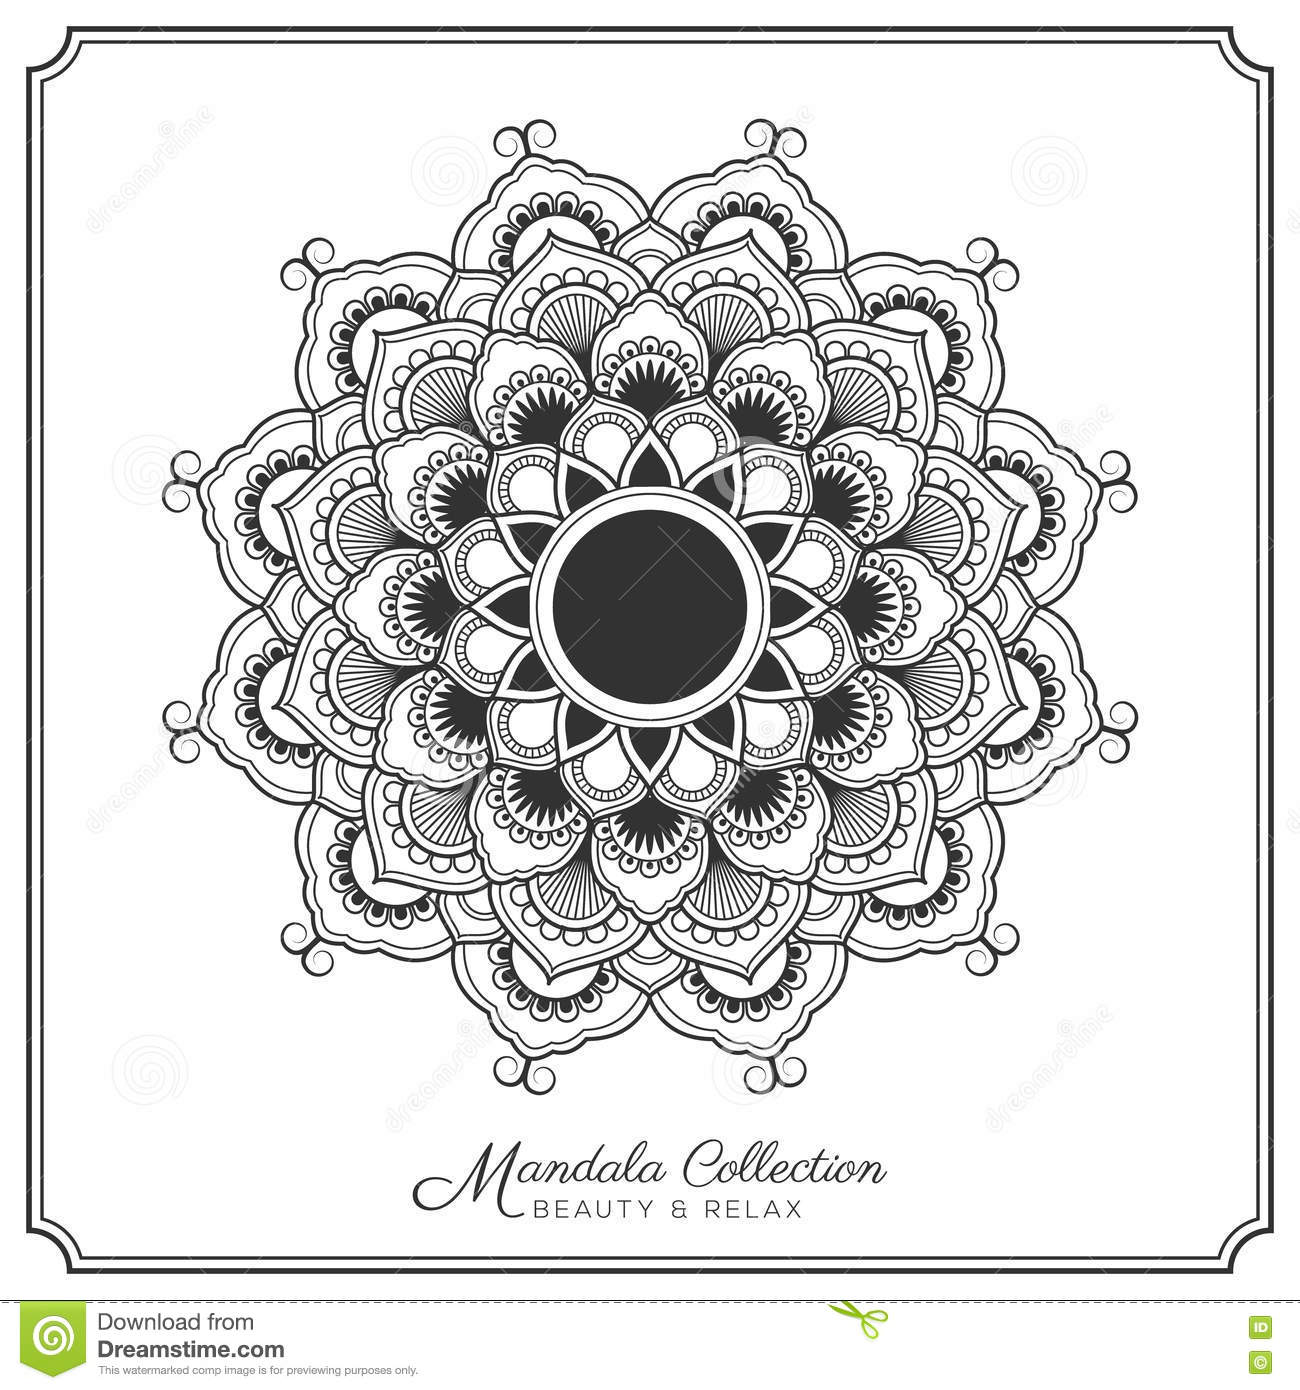 Mandala Tattoo Design Template Stock Vector Illustration Of Henna Chevy Equinox Engine Diagram Decorative Ornament For Coloring Page Greeting Card Invitation Yoga And Spa Symbol